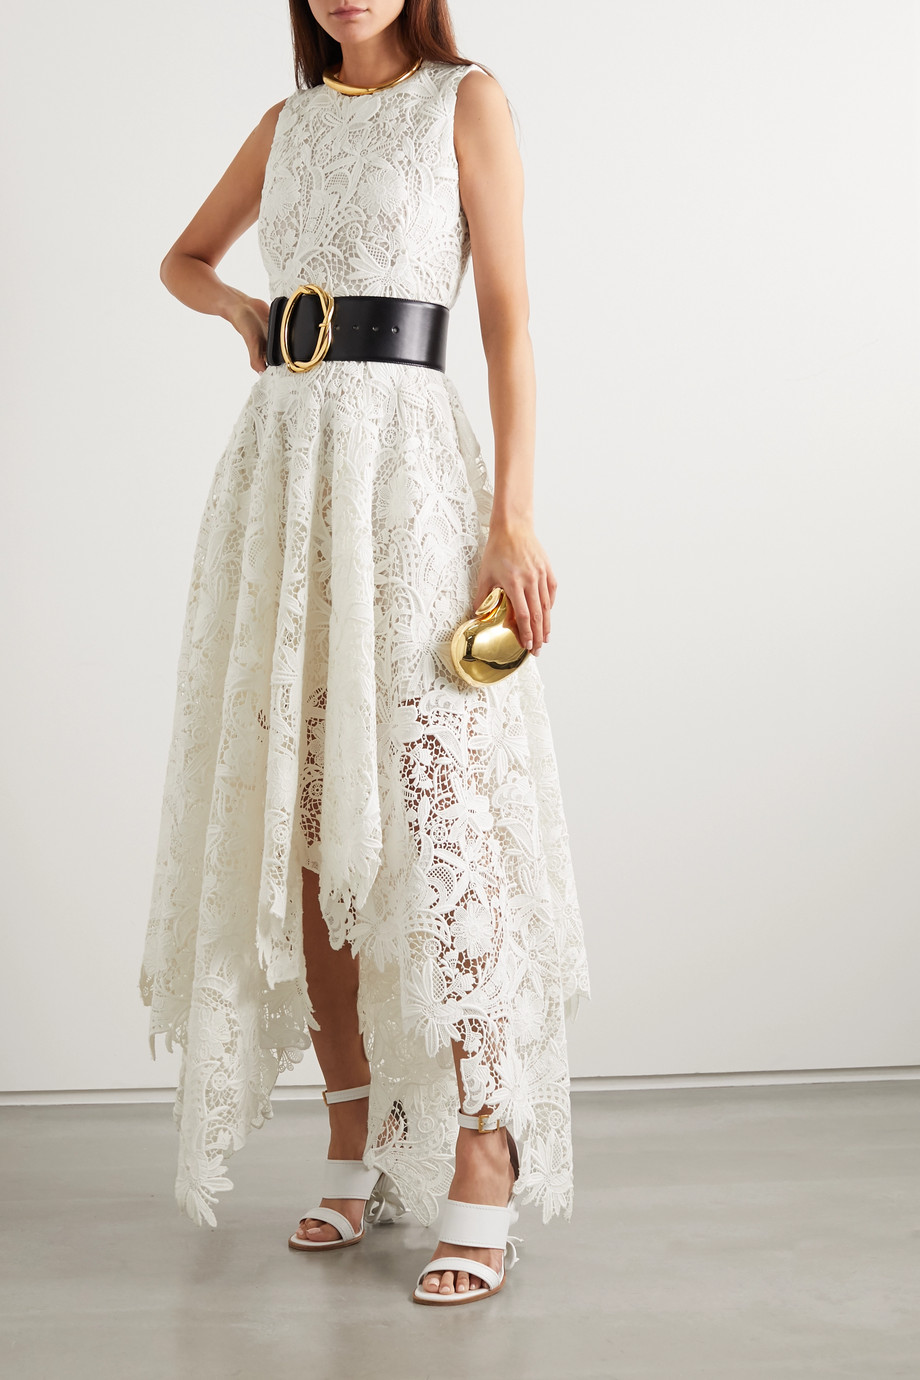 Alexander McQueen Asymmetric cotton-blend corded lace dress